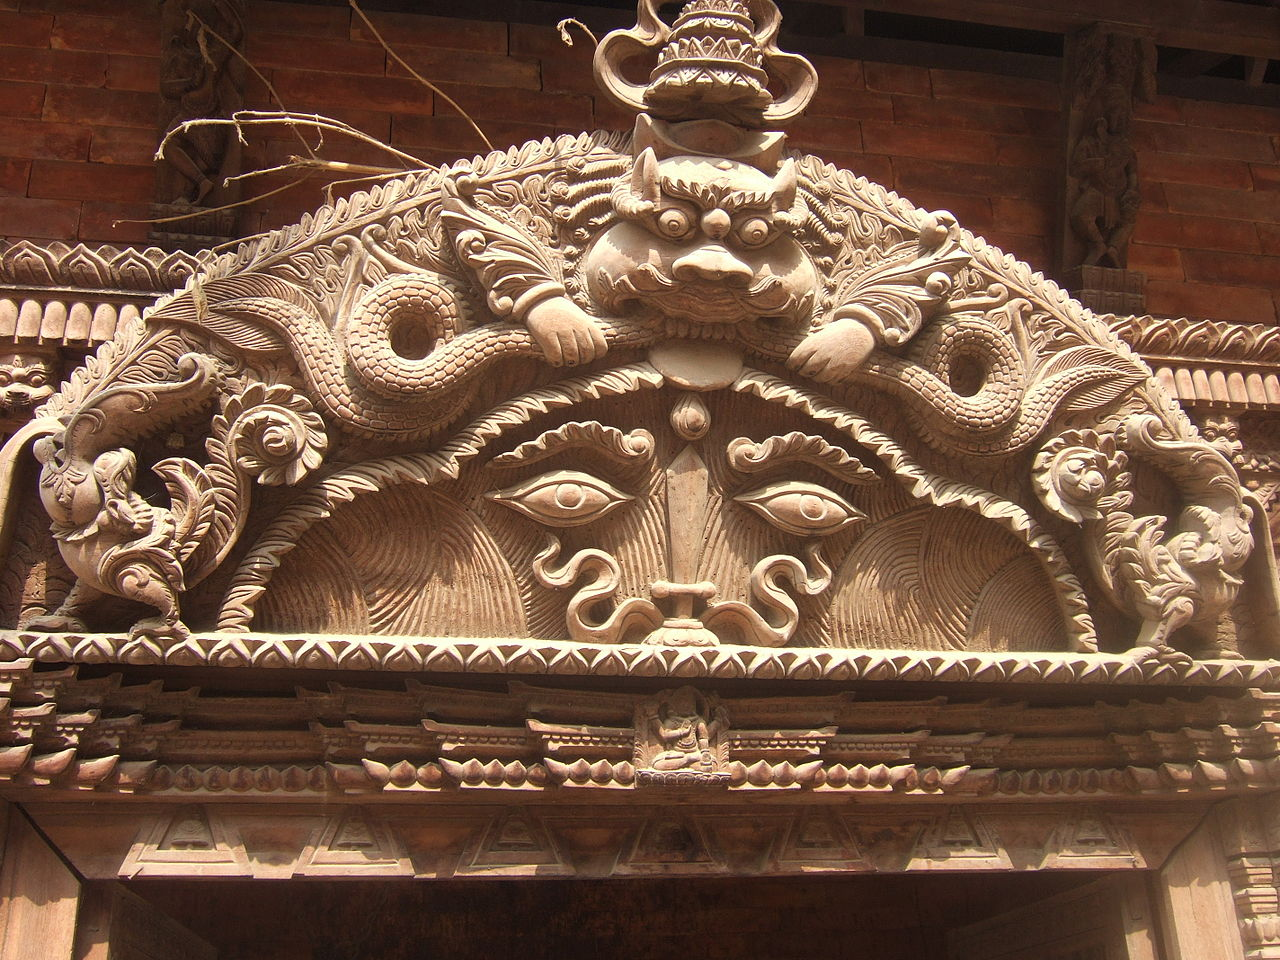 Kirtimukha on top of arch above entrance to Hindu temple